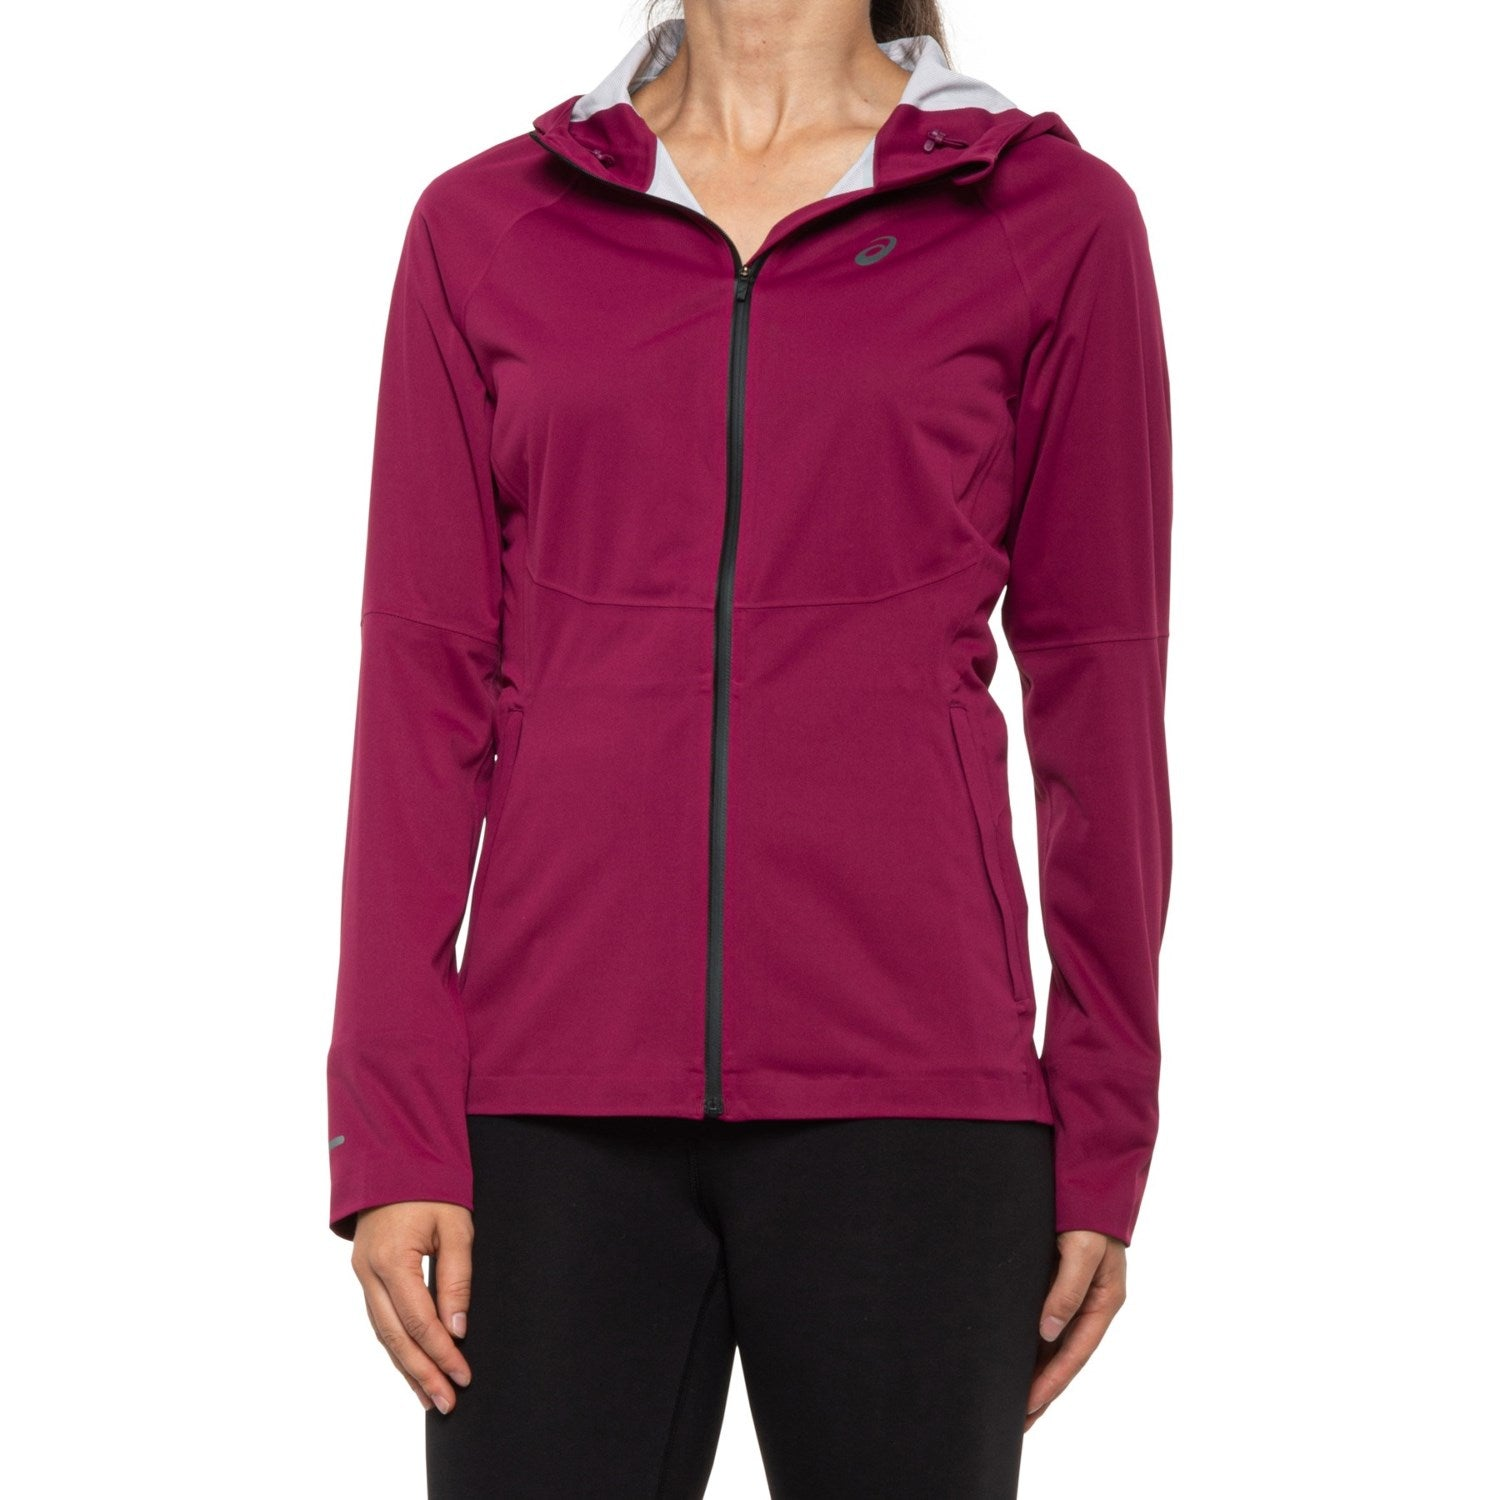 Asics Accelerate Jacket Women's